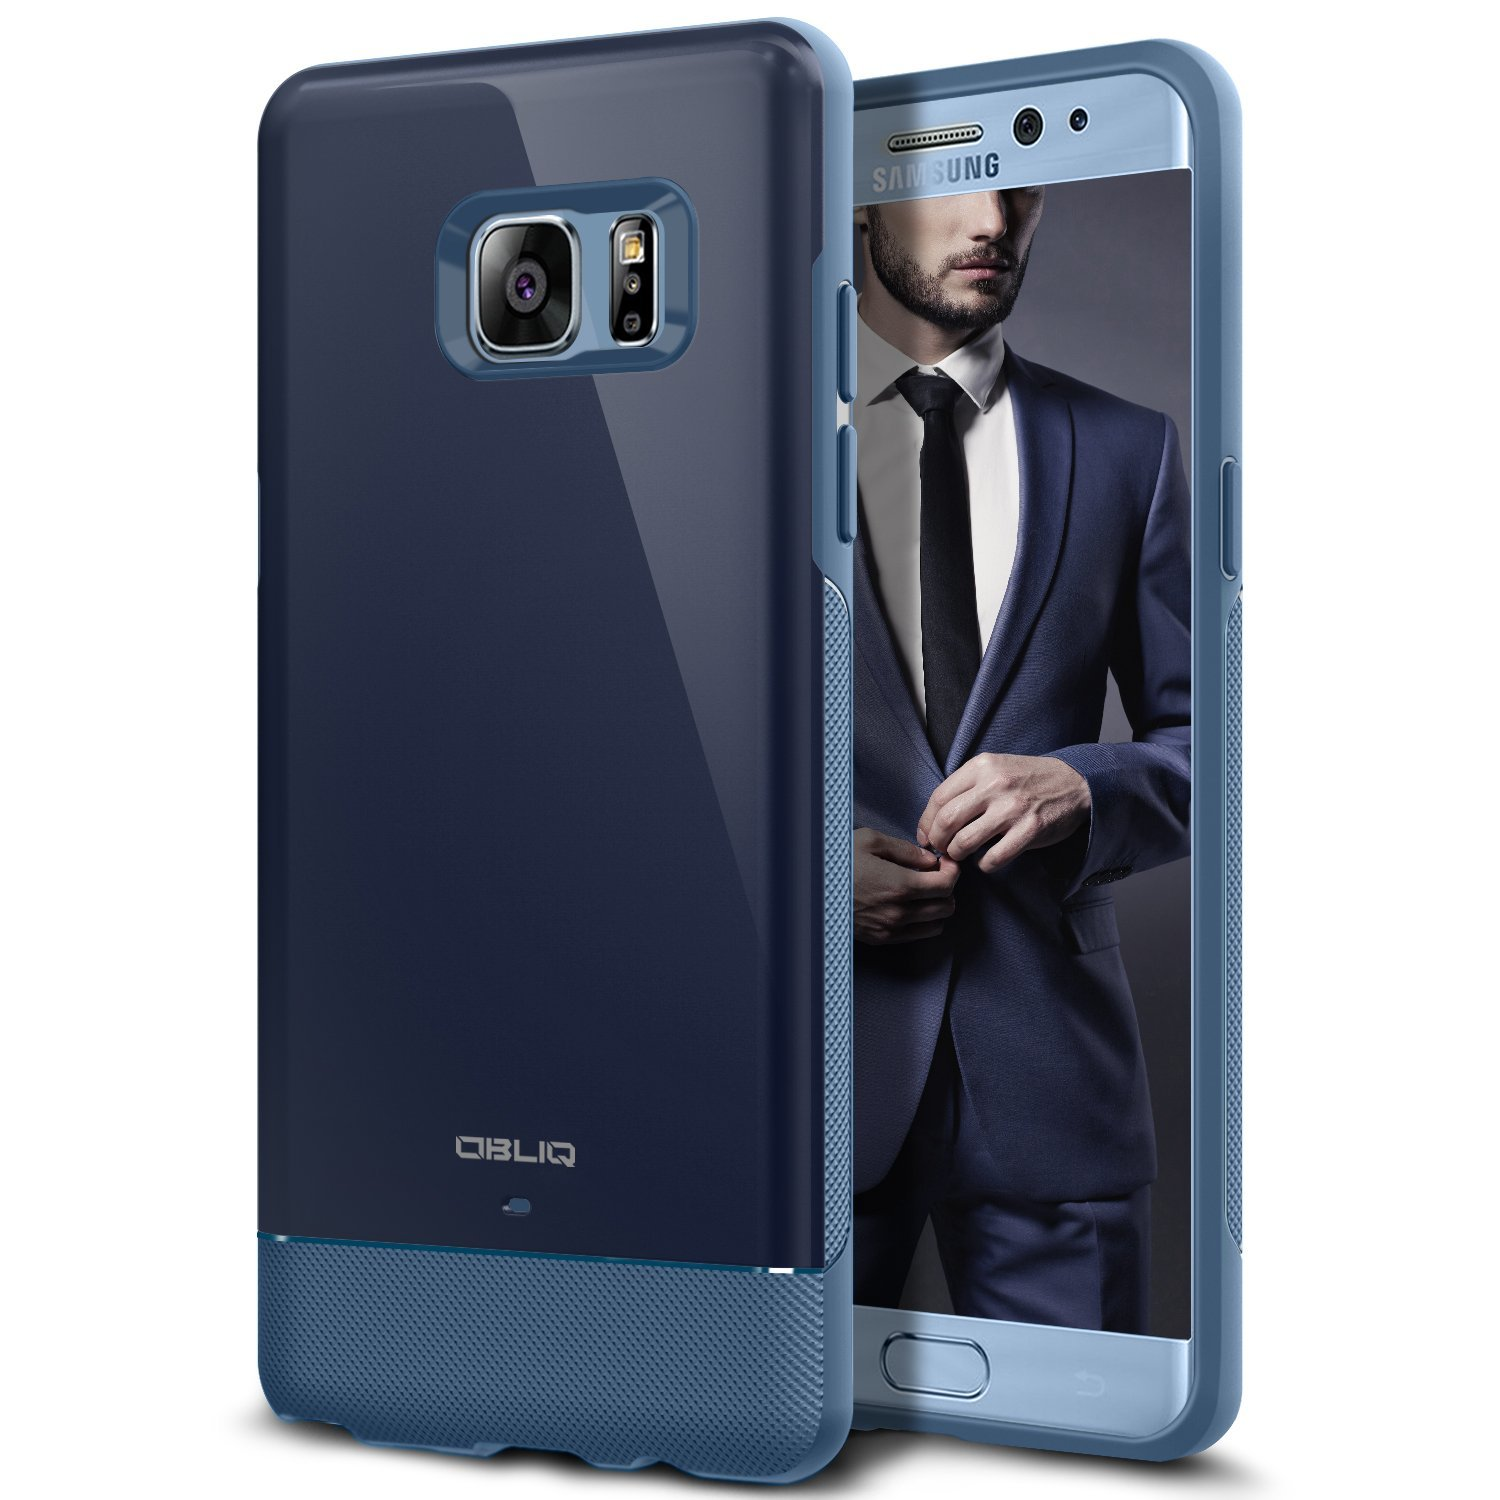 OBLIQ Dual Meta Case Samsung Galaxy Note 7 Case - NAVY BLUE